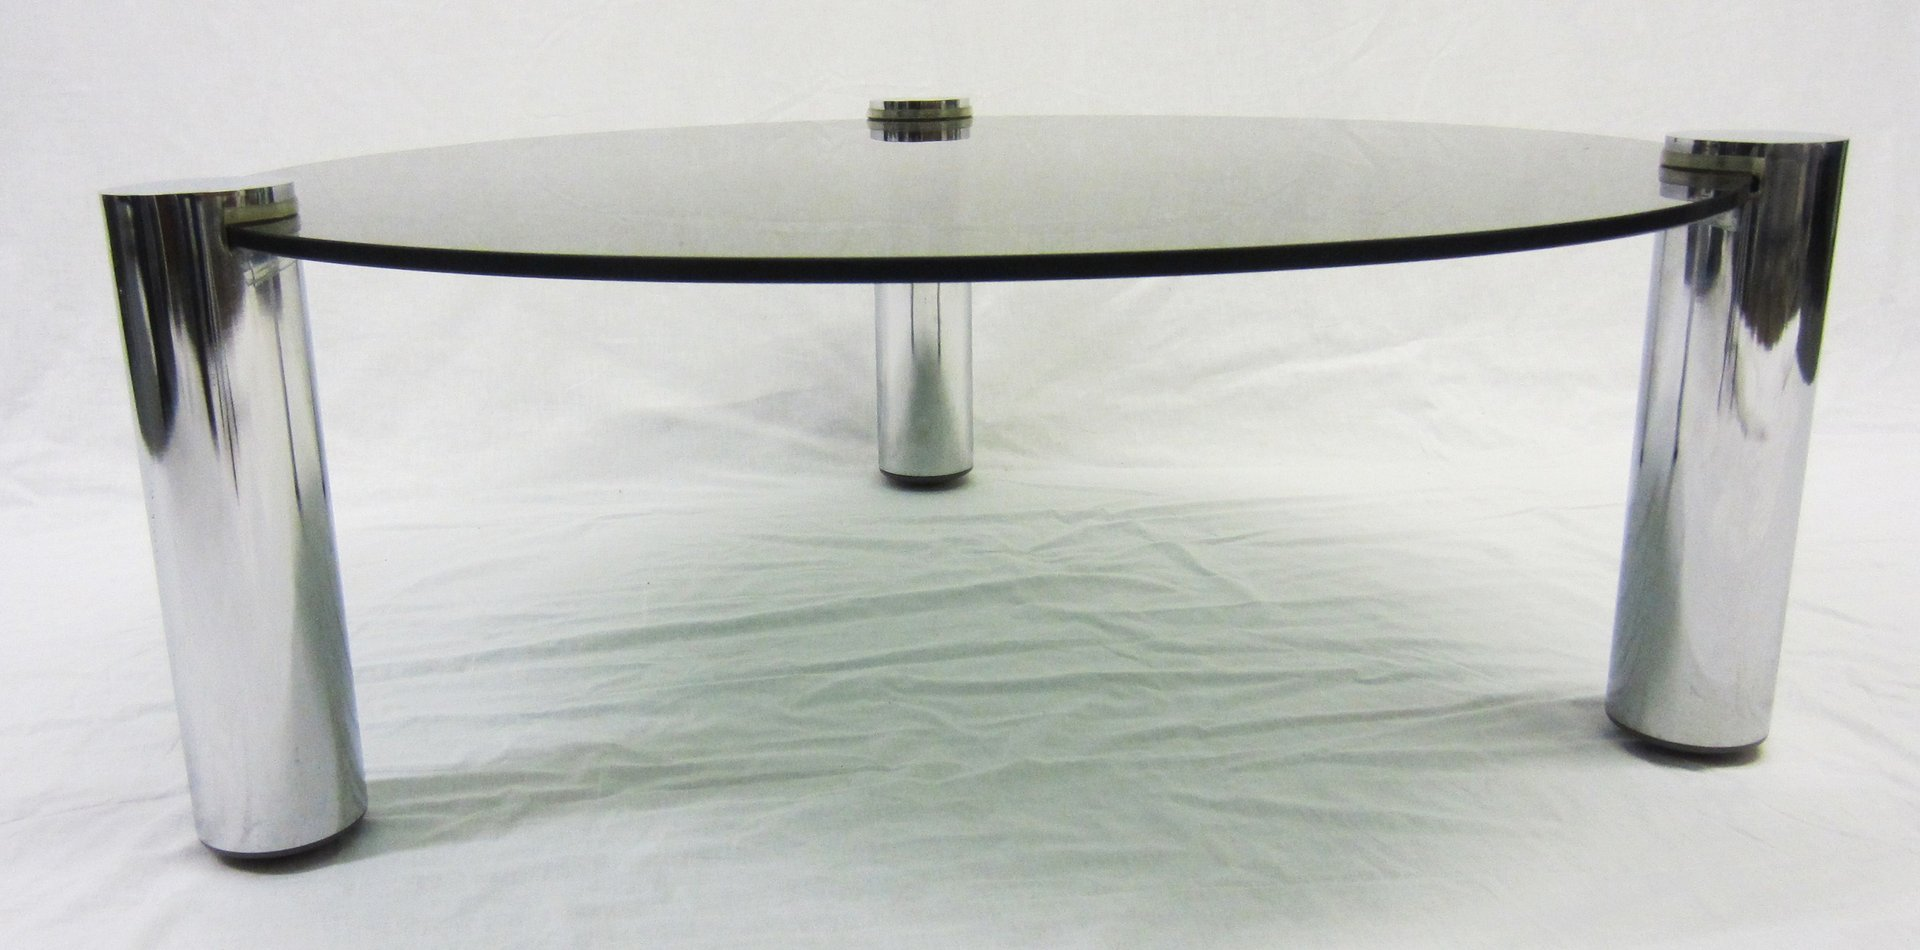 Round glass and chrome coffee table from pieff 1960s for sale at round glass and chrome coffee table from pieff 1960s for sale at pamono geotapseo Gallery